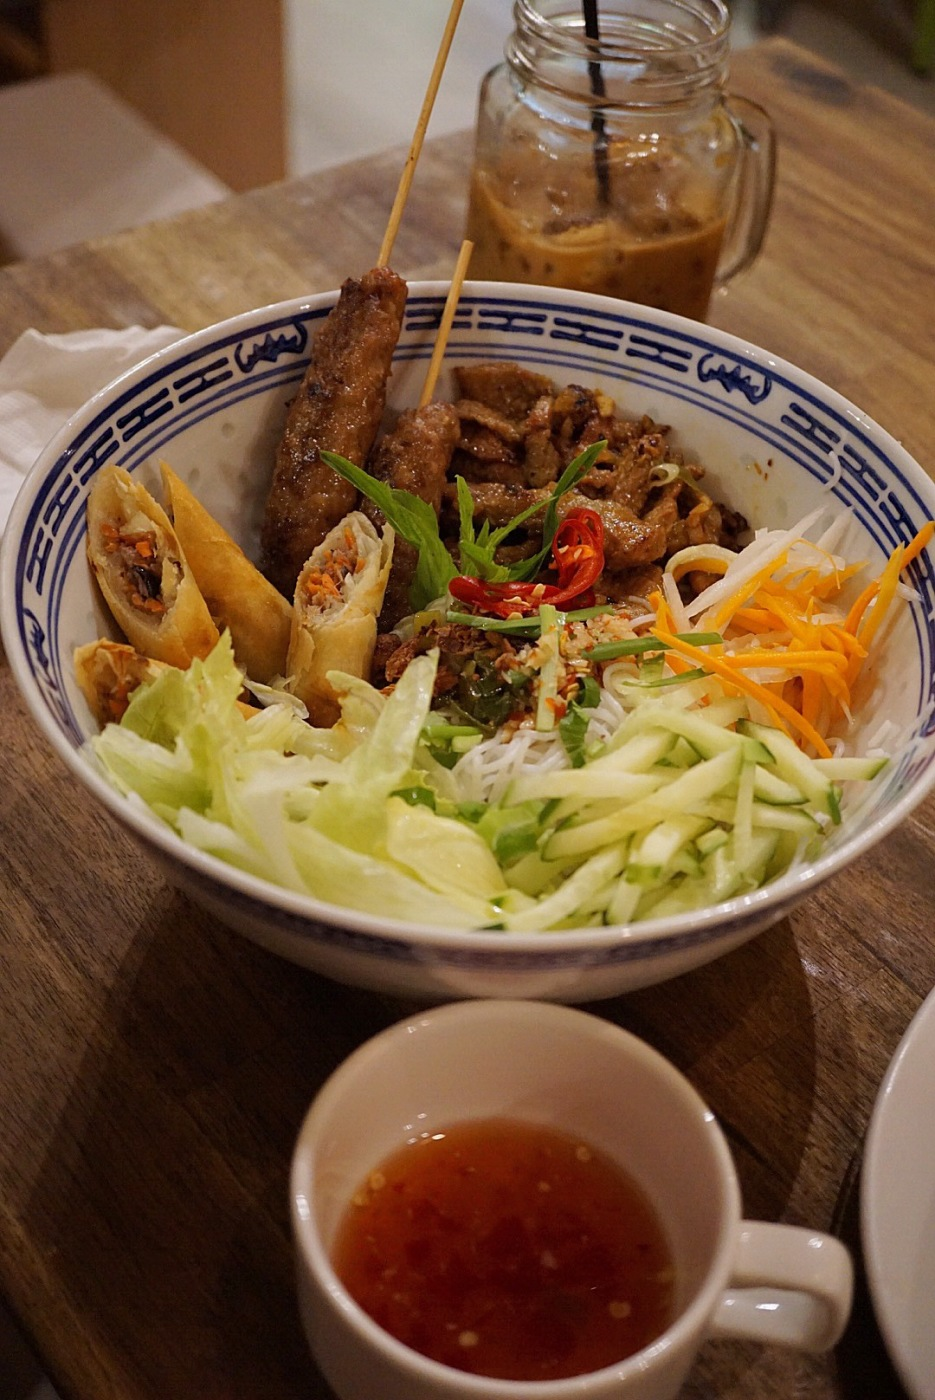 Bun thit nuong cha gio ($14) Pork vermicelli noodles with fresh salad